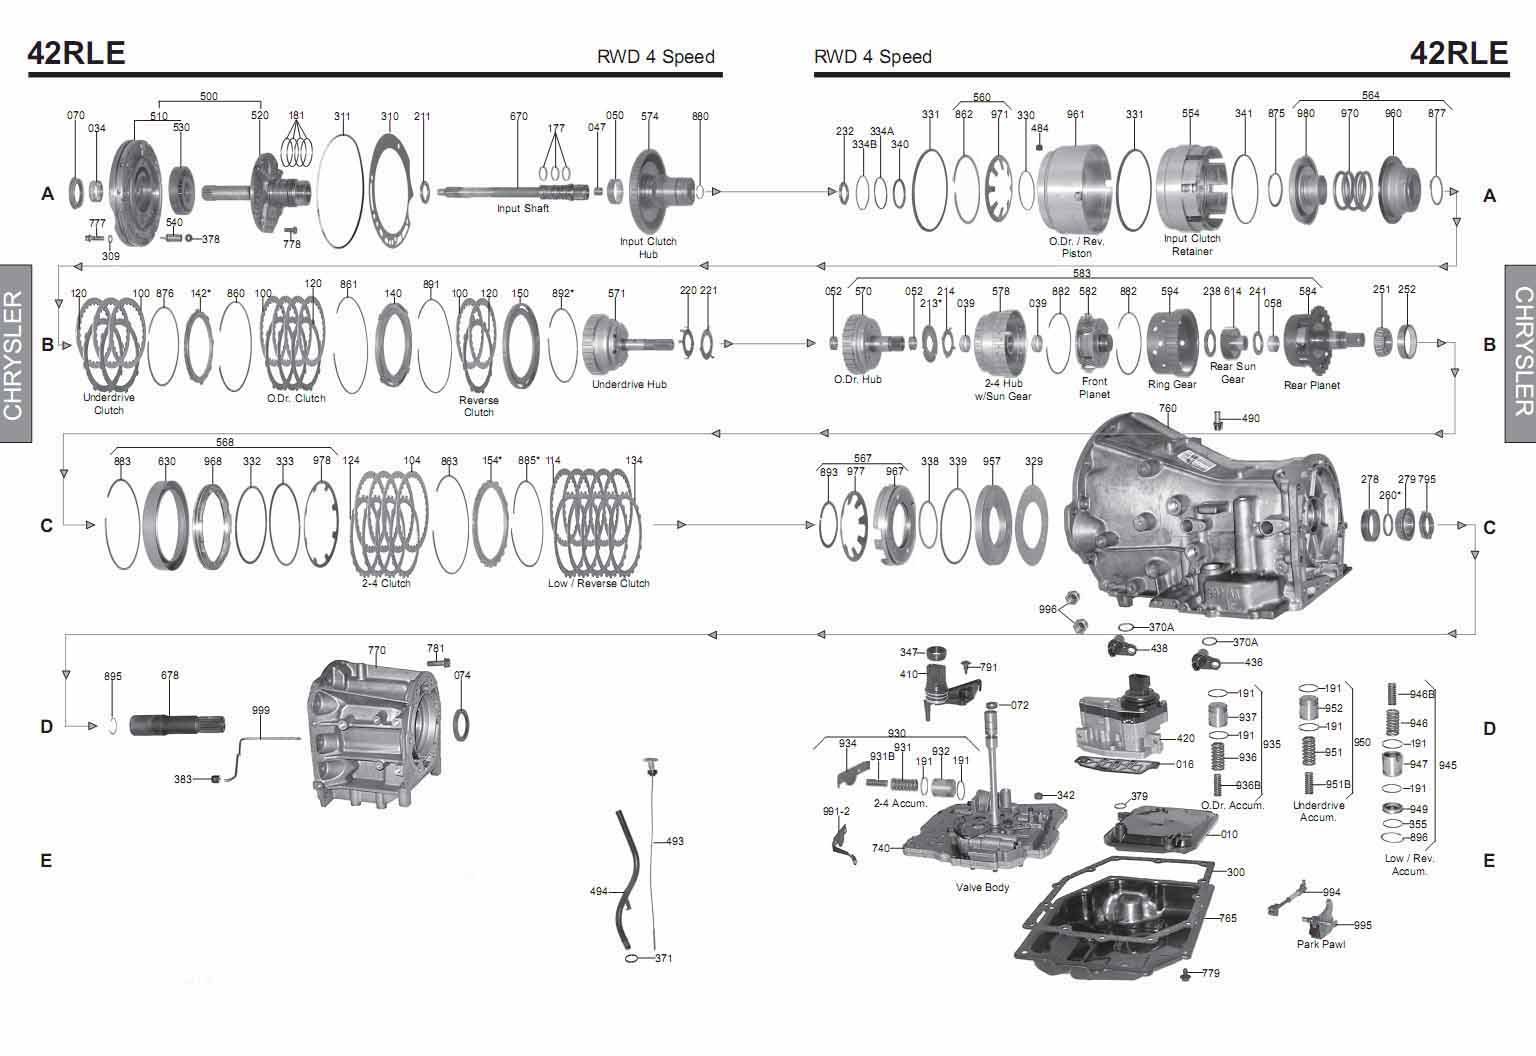 hight resolution of transmission repair manuals 42le a606 42rle instructions for 42rle transmission sensor diagram 42rle transmission diagram